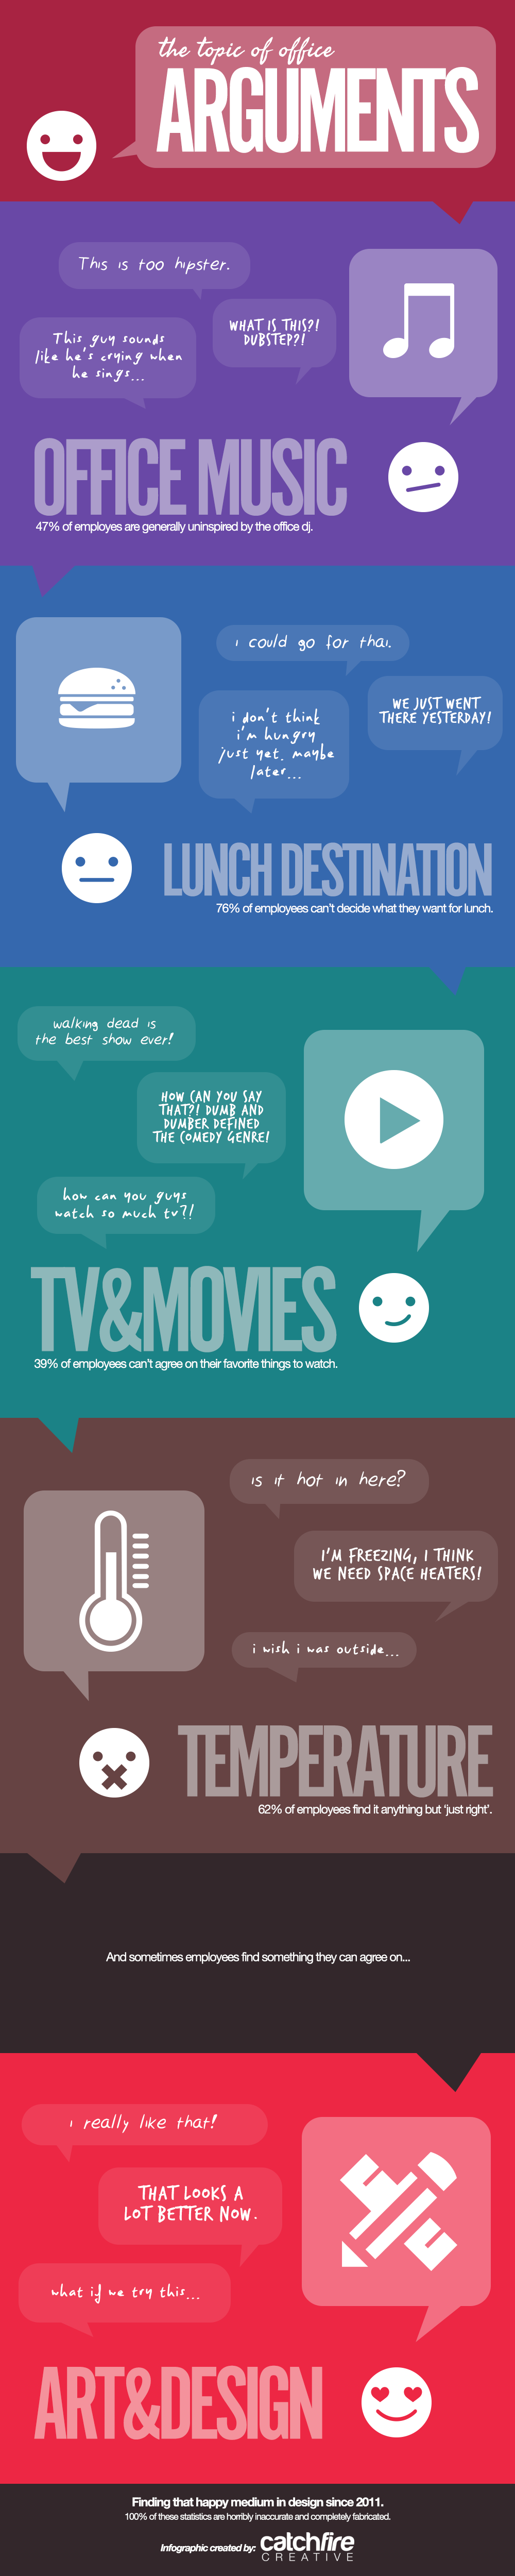 office_arguments_infographic2